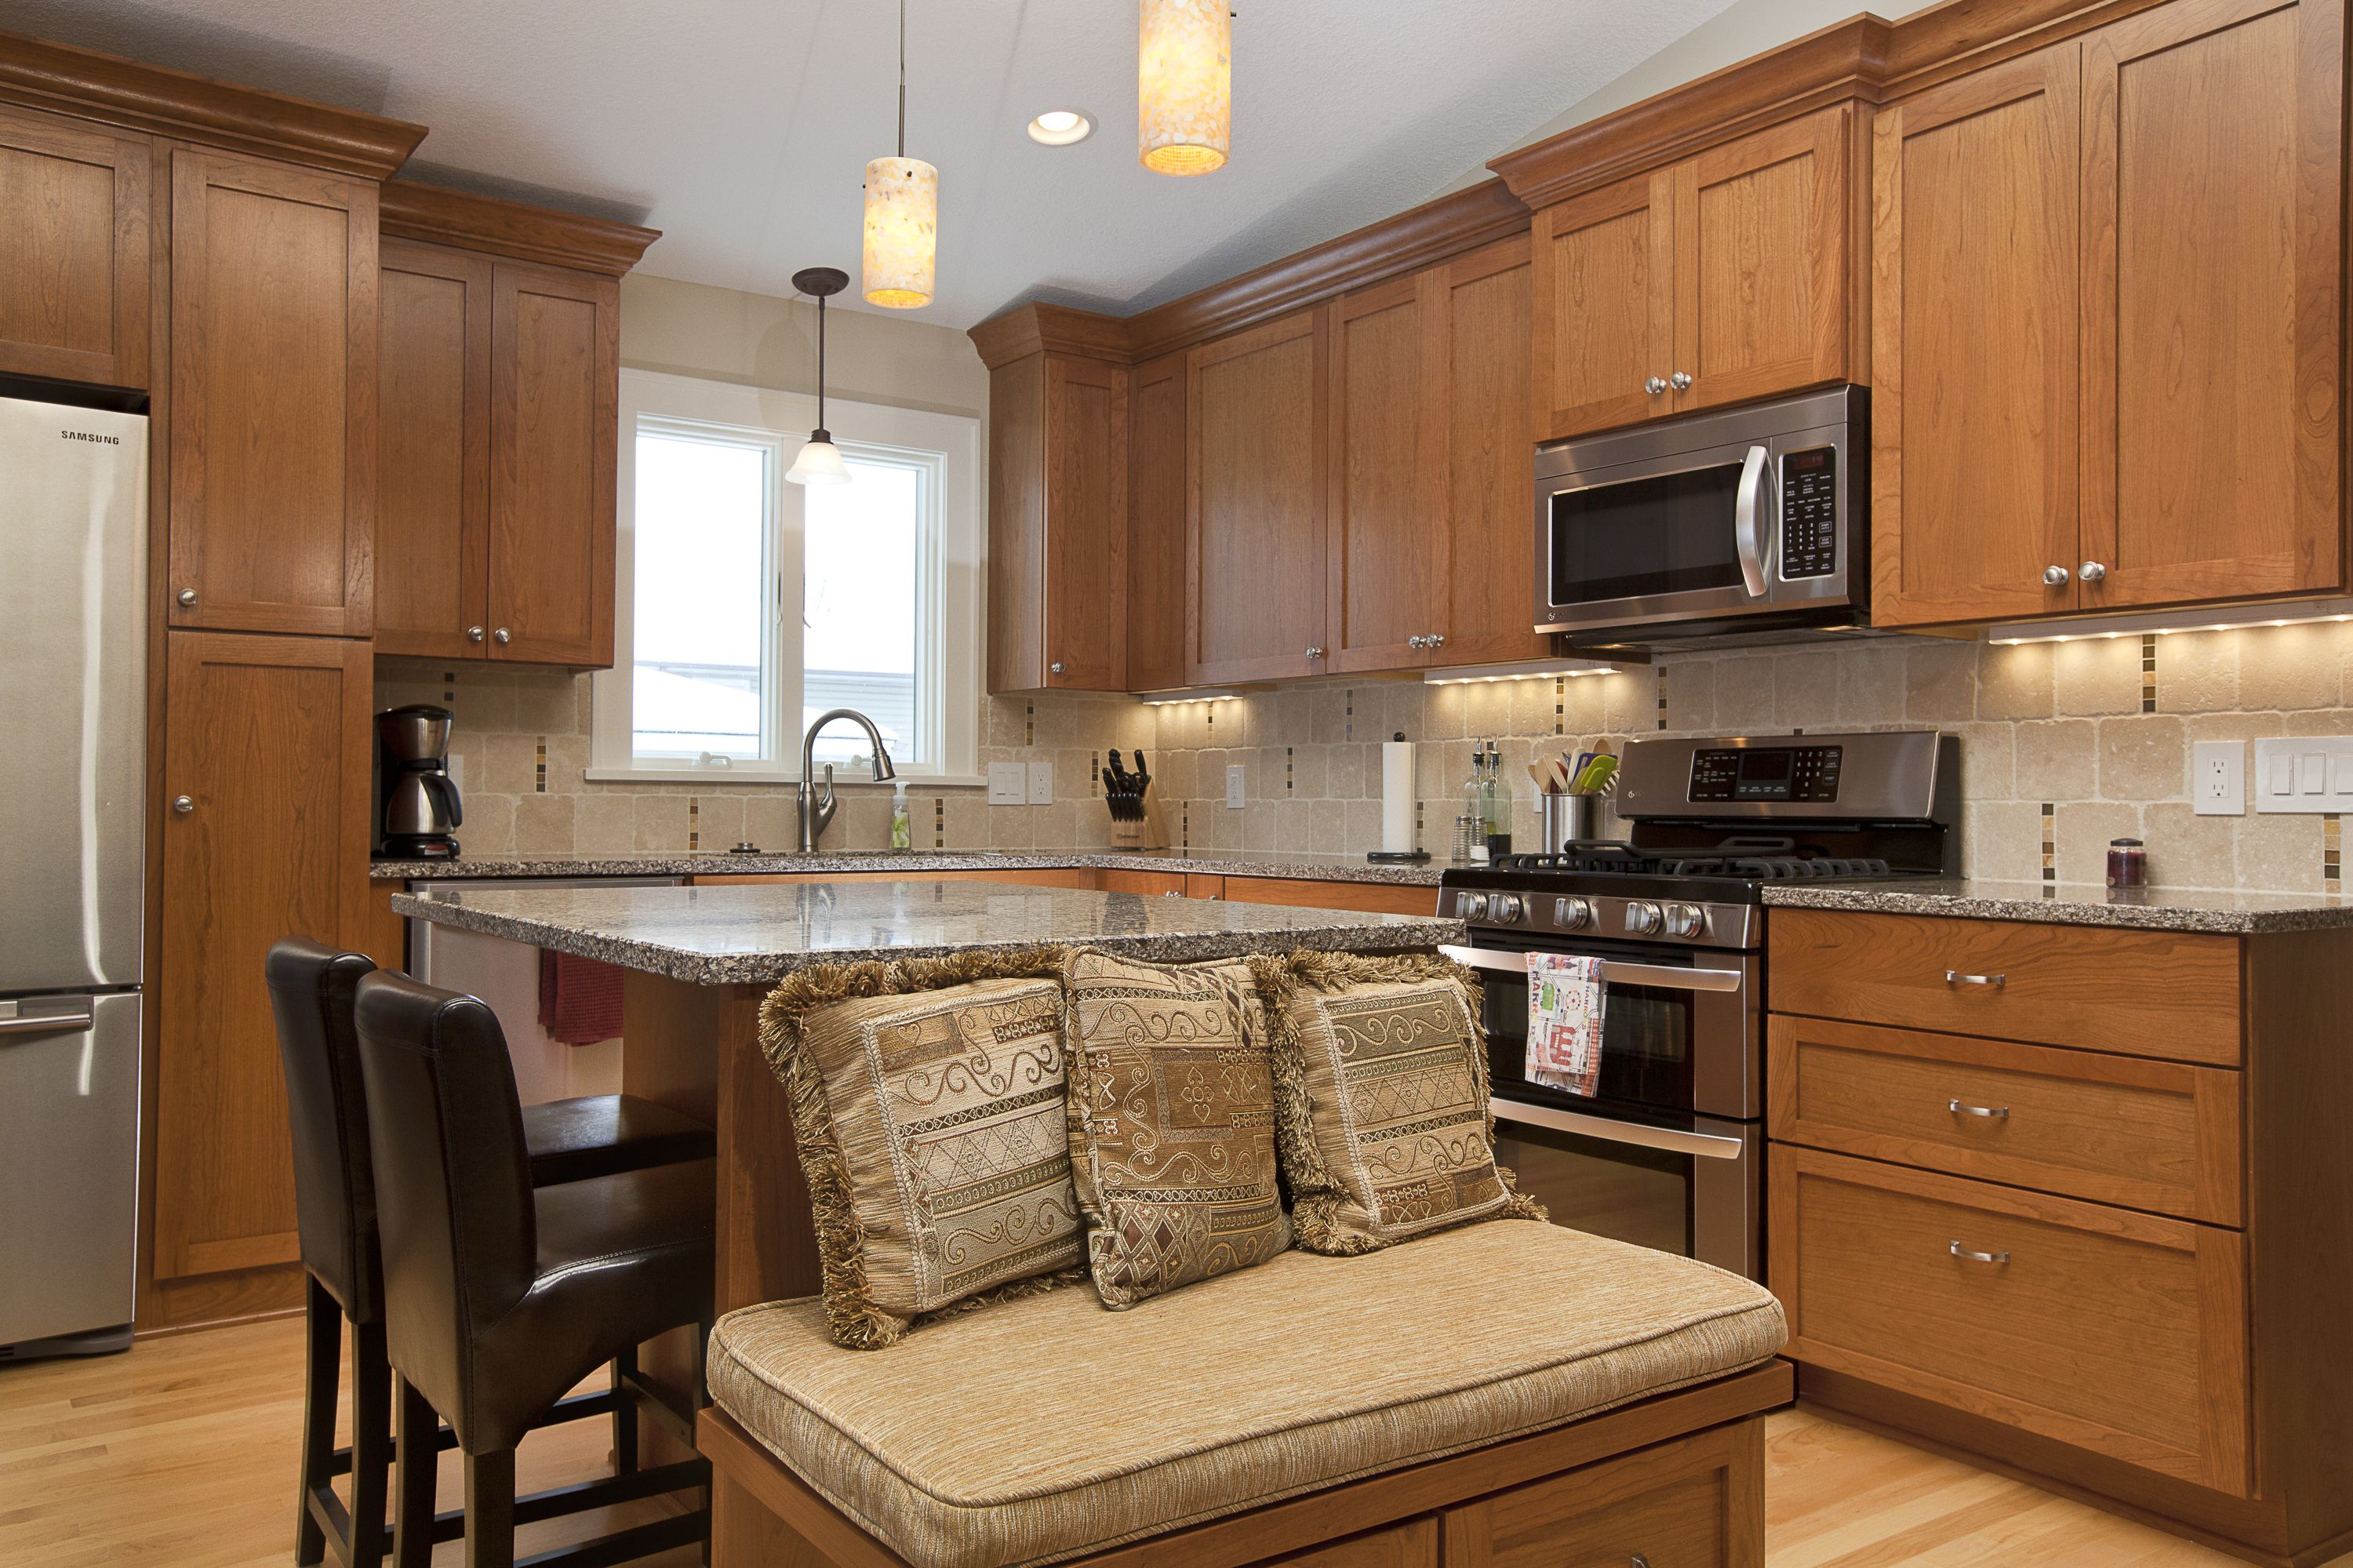 Maple Grove Kitchen Remodel The Couple Wanted To Open Up The Space To The Living Room Create Multi Functional Seating Match Existing Hardwood Floors In Kitchen Split Level Home Designs Kitchen Flooring